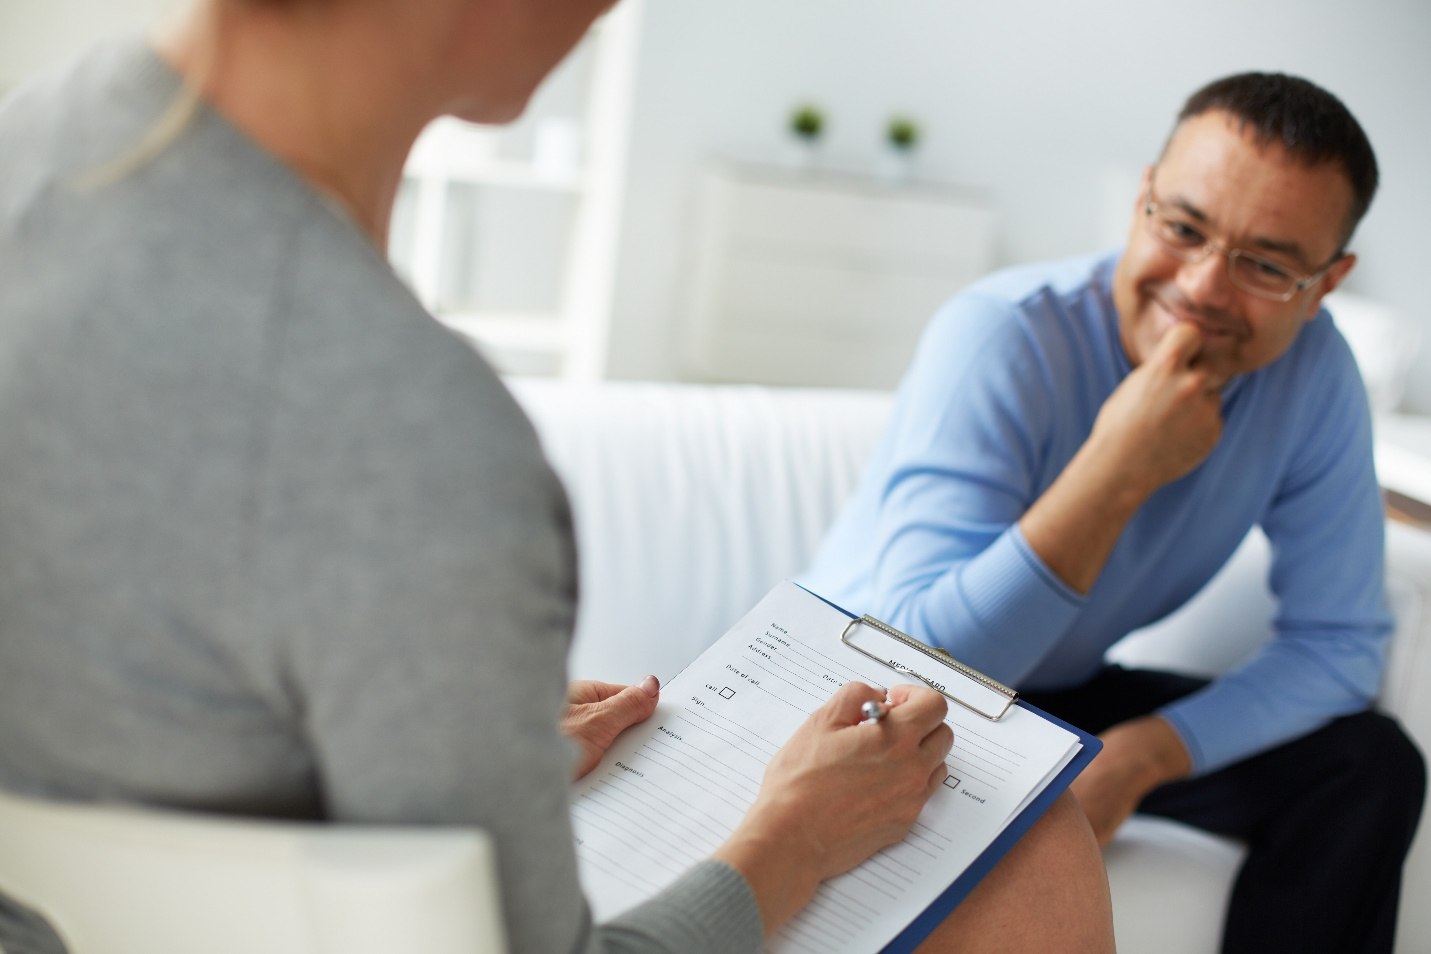 psychologist consulting man during psychological therapy session